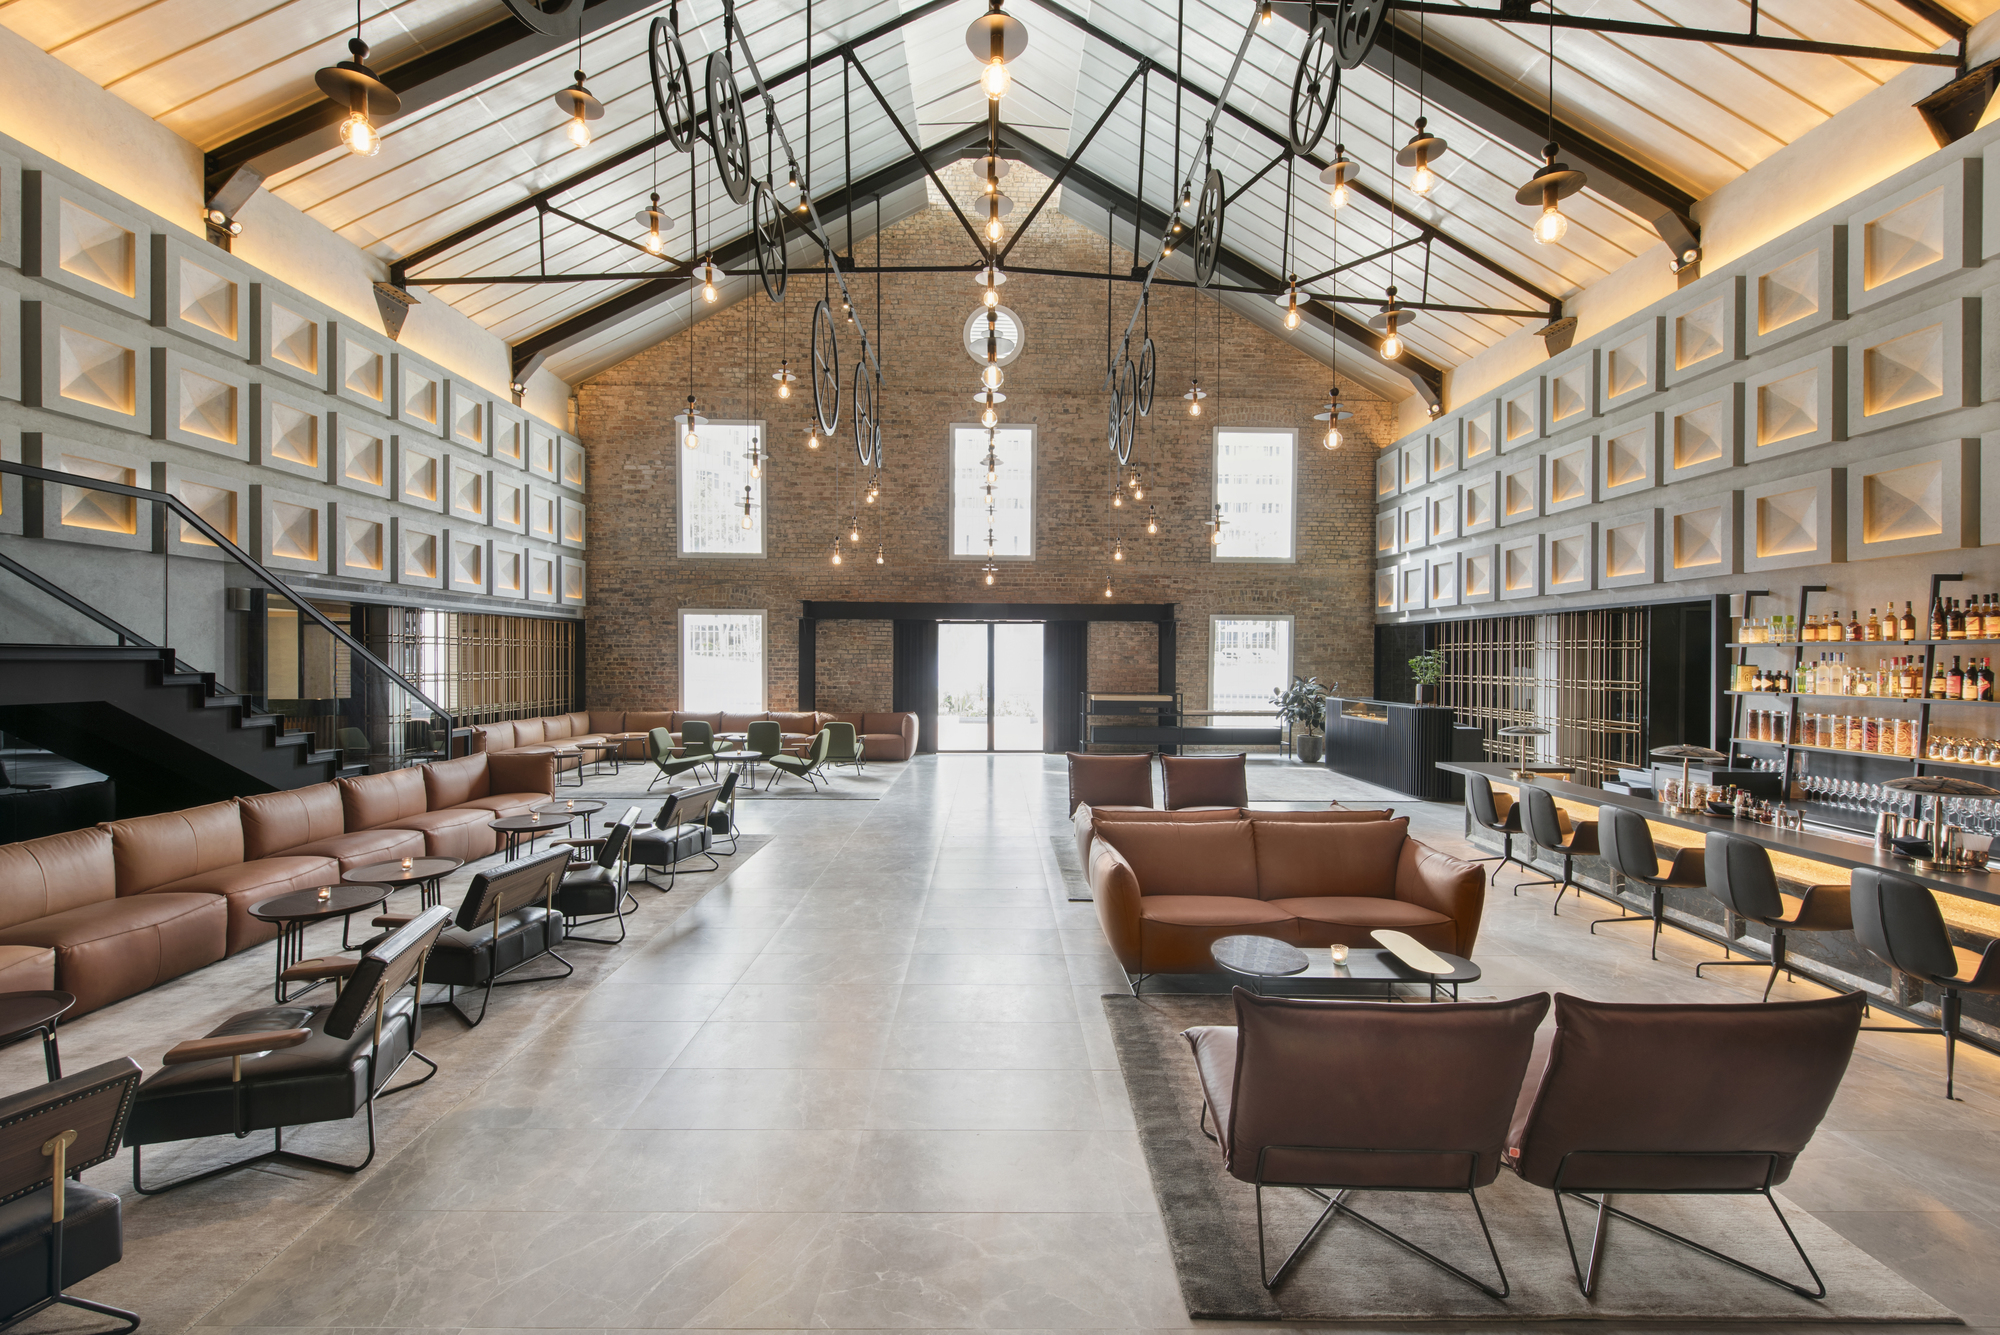 The Warehouse Hotel's large lobby.